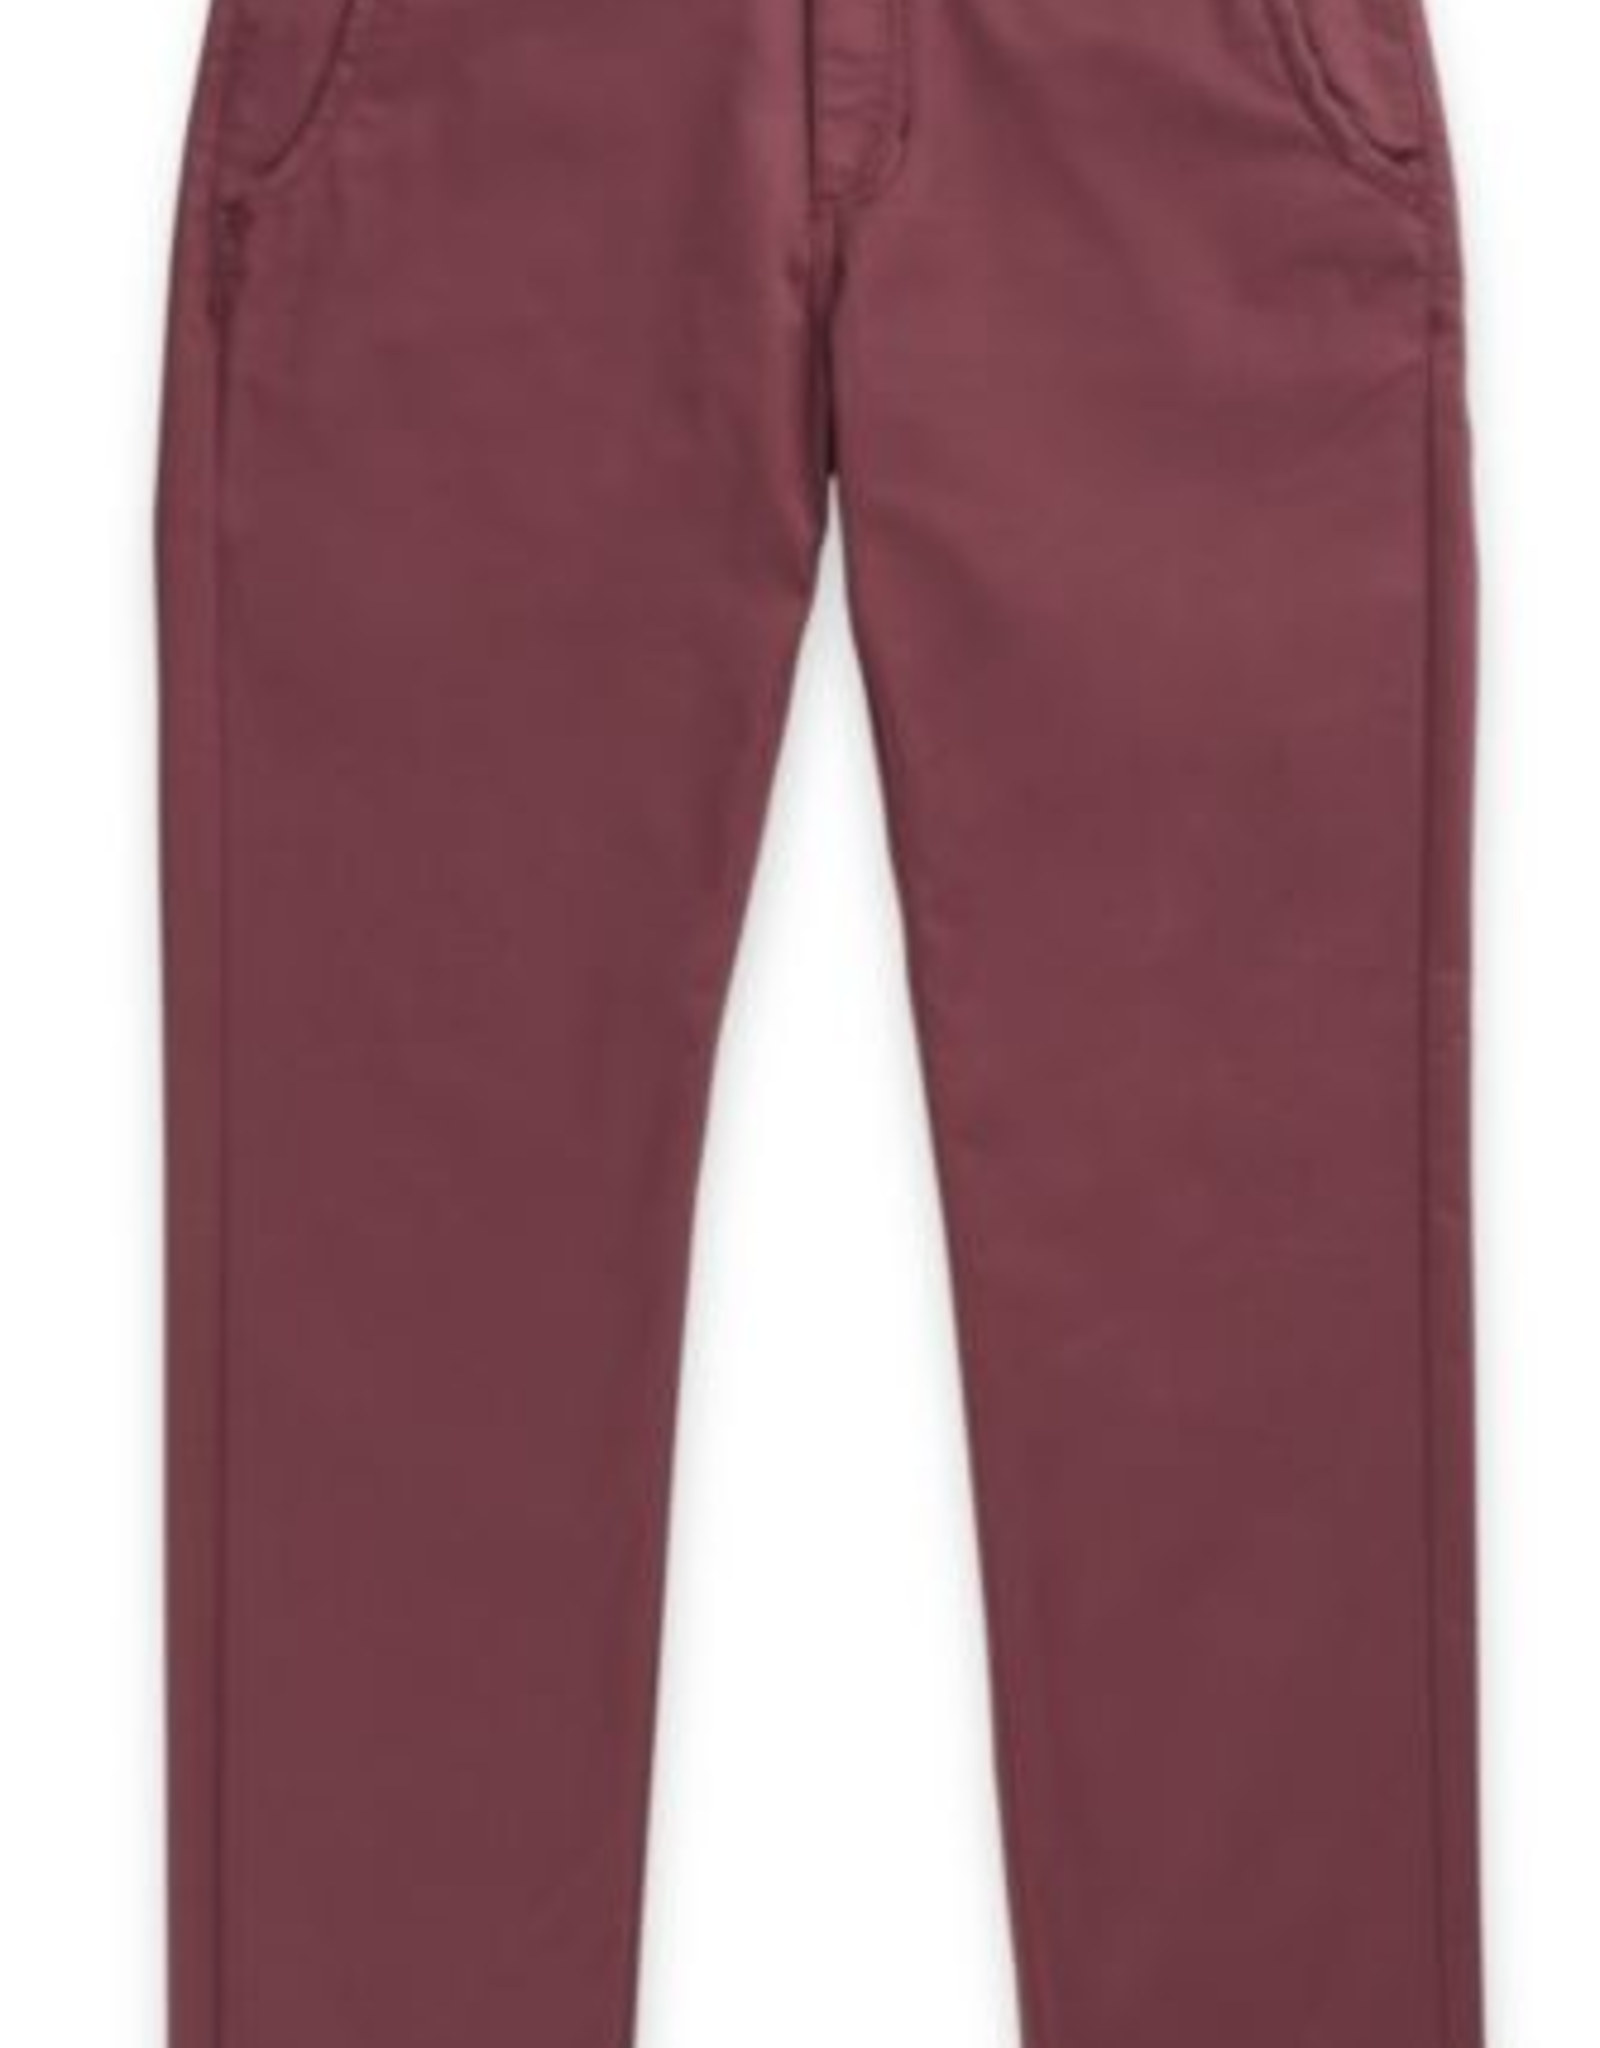 VANS VANS AUTHENTIC CHINO PANT PORT WINE